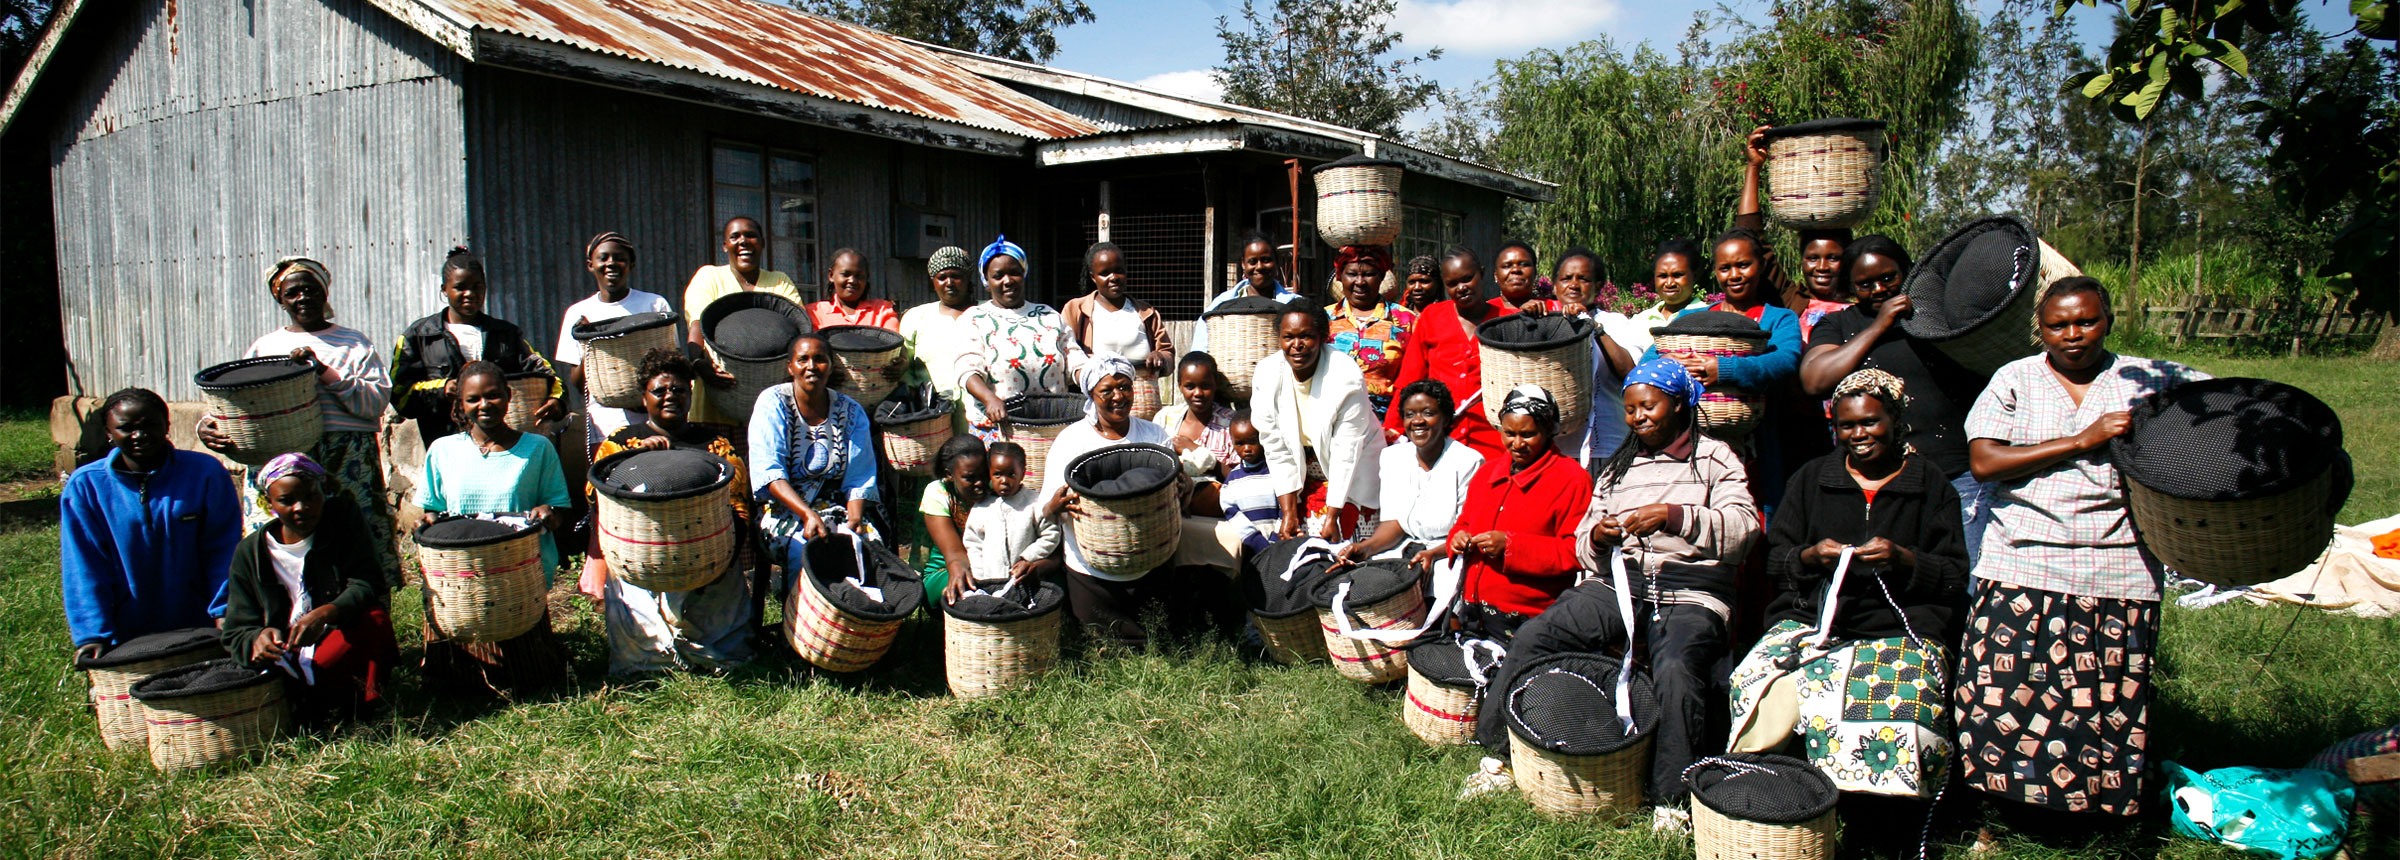 African Basket weavers